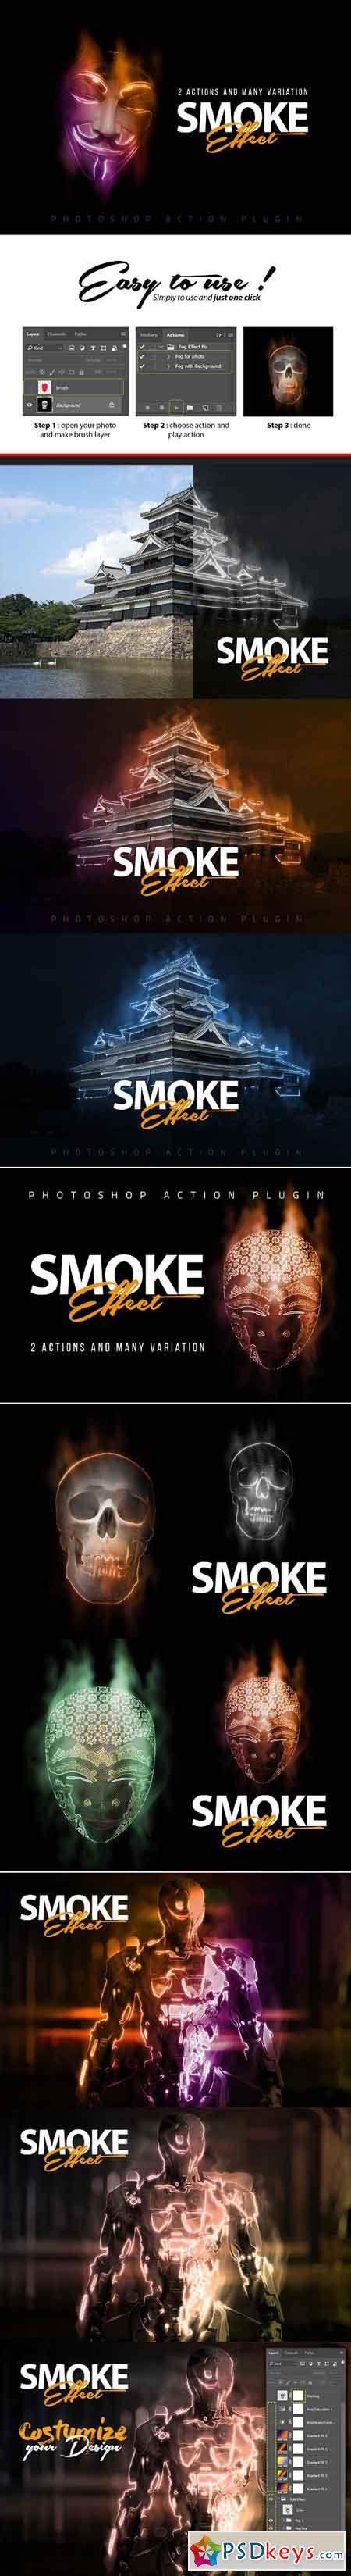 Smoke Effect Photoshop Action 2897739